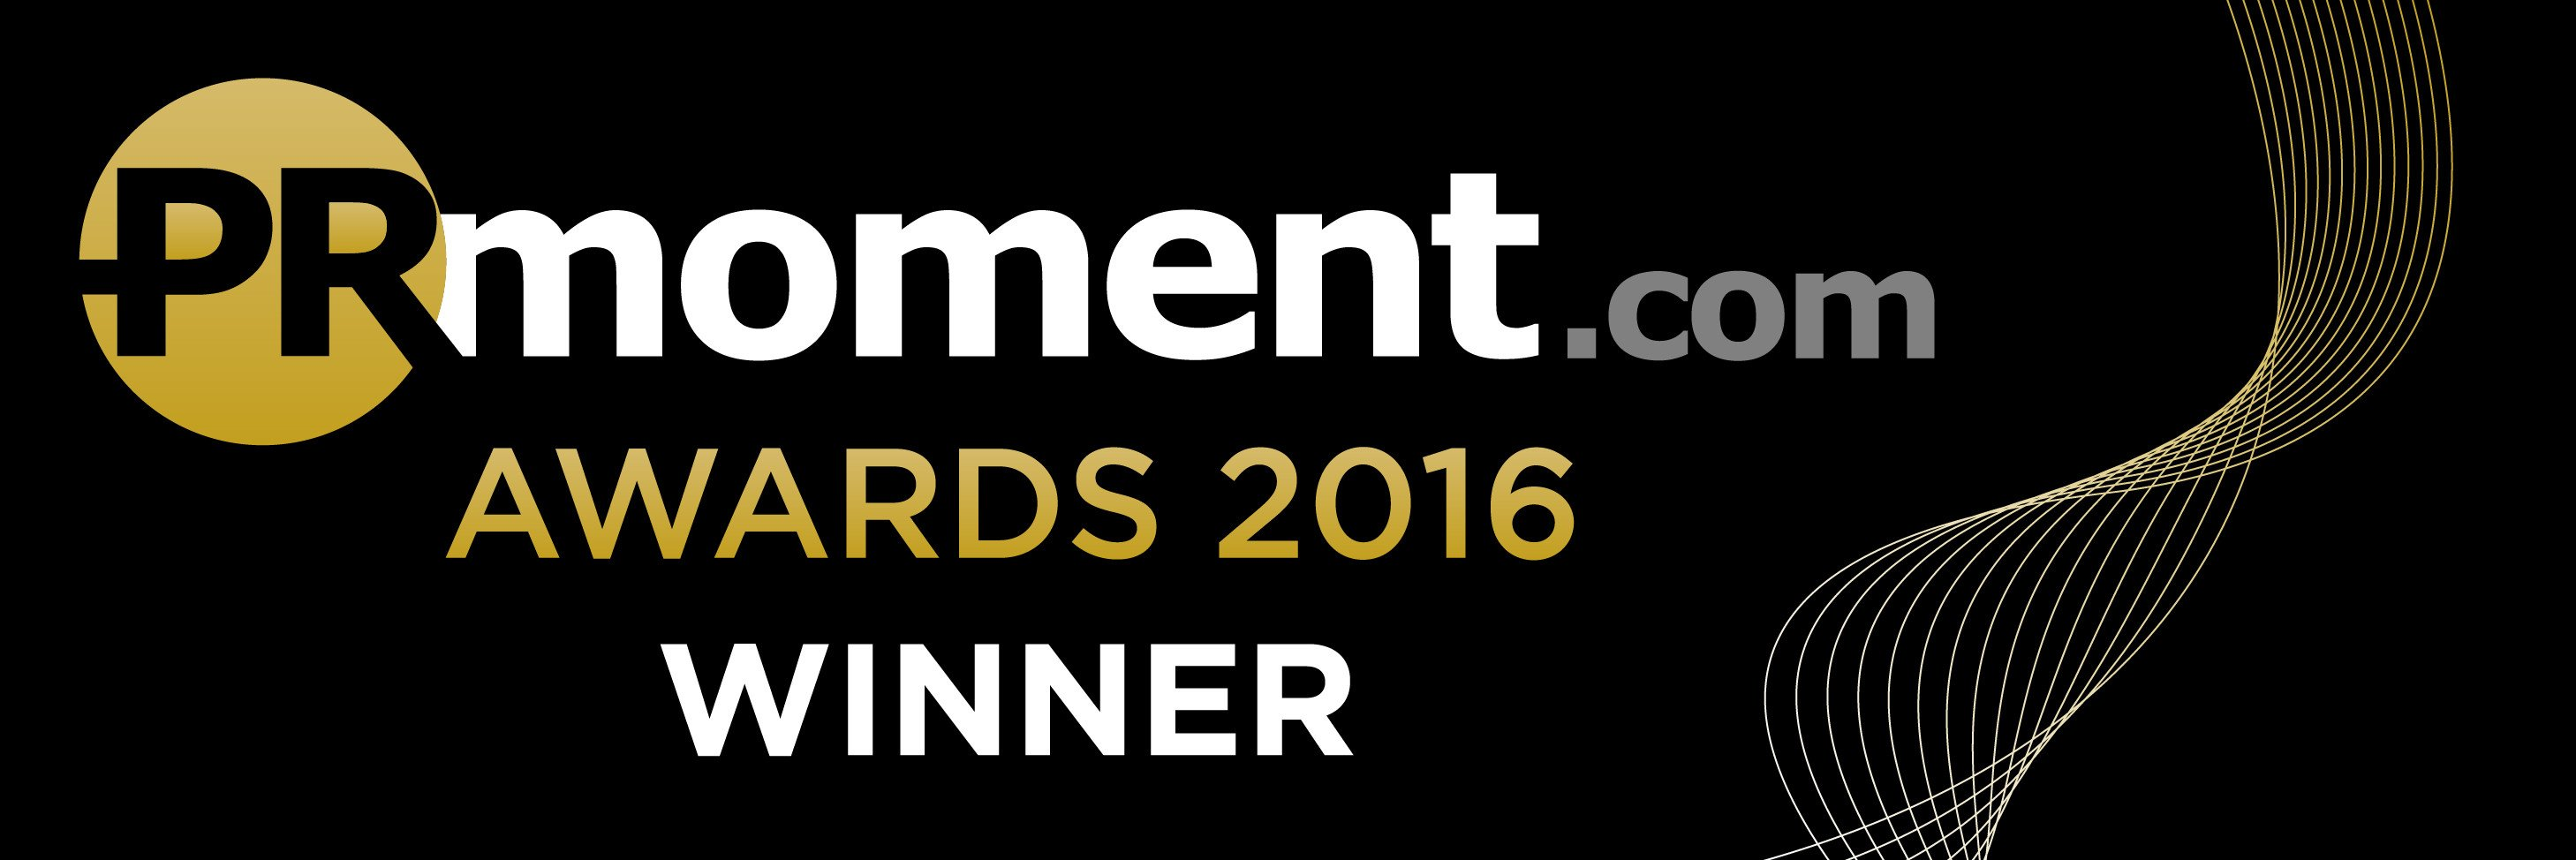 PR Moment Awards